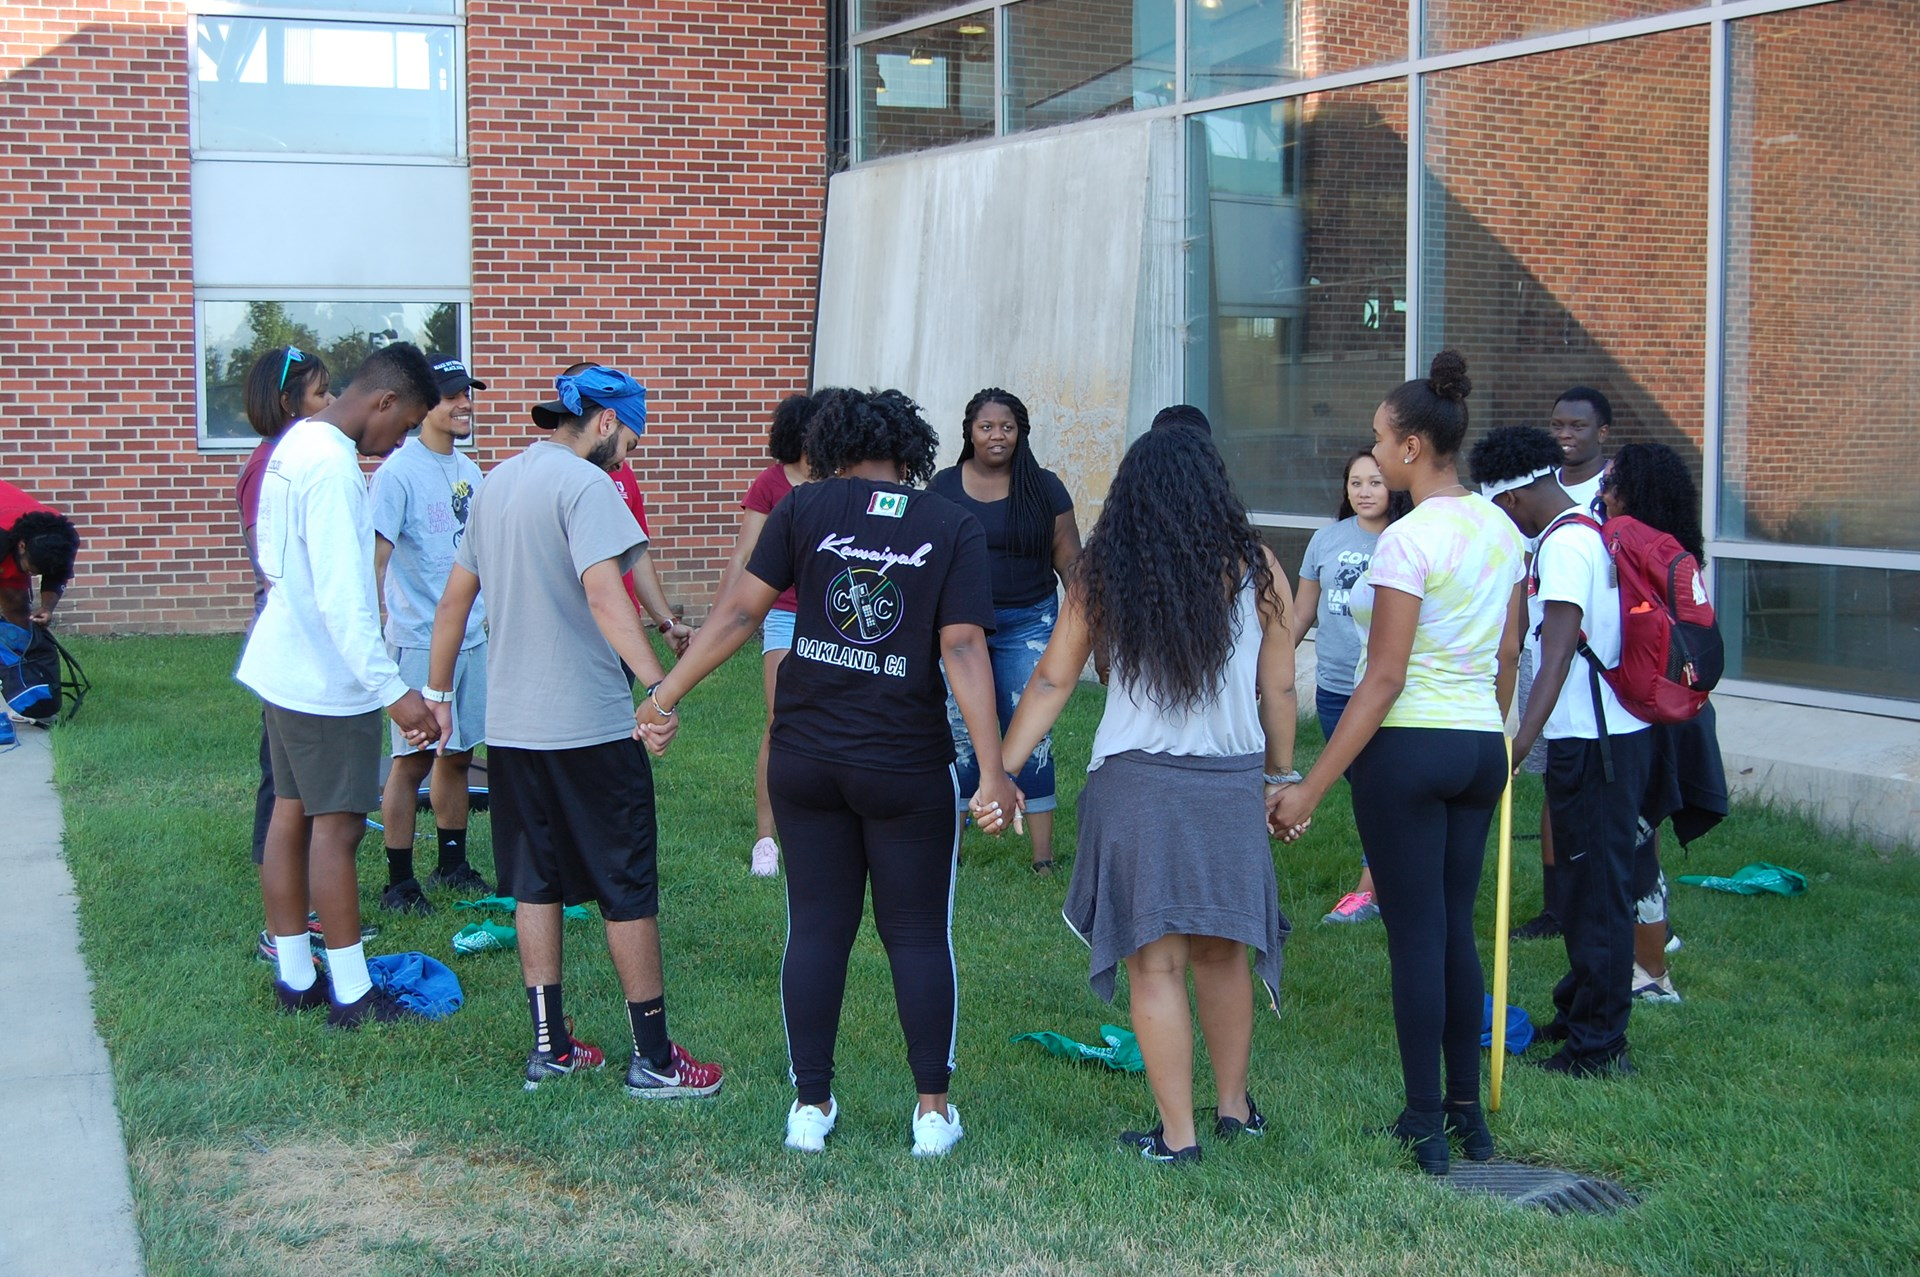 Smartstart cohort participate in team building exercise outside of the Student Recreation Center